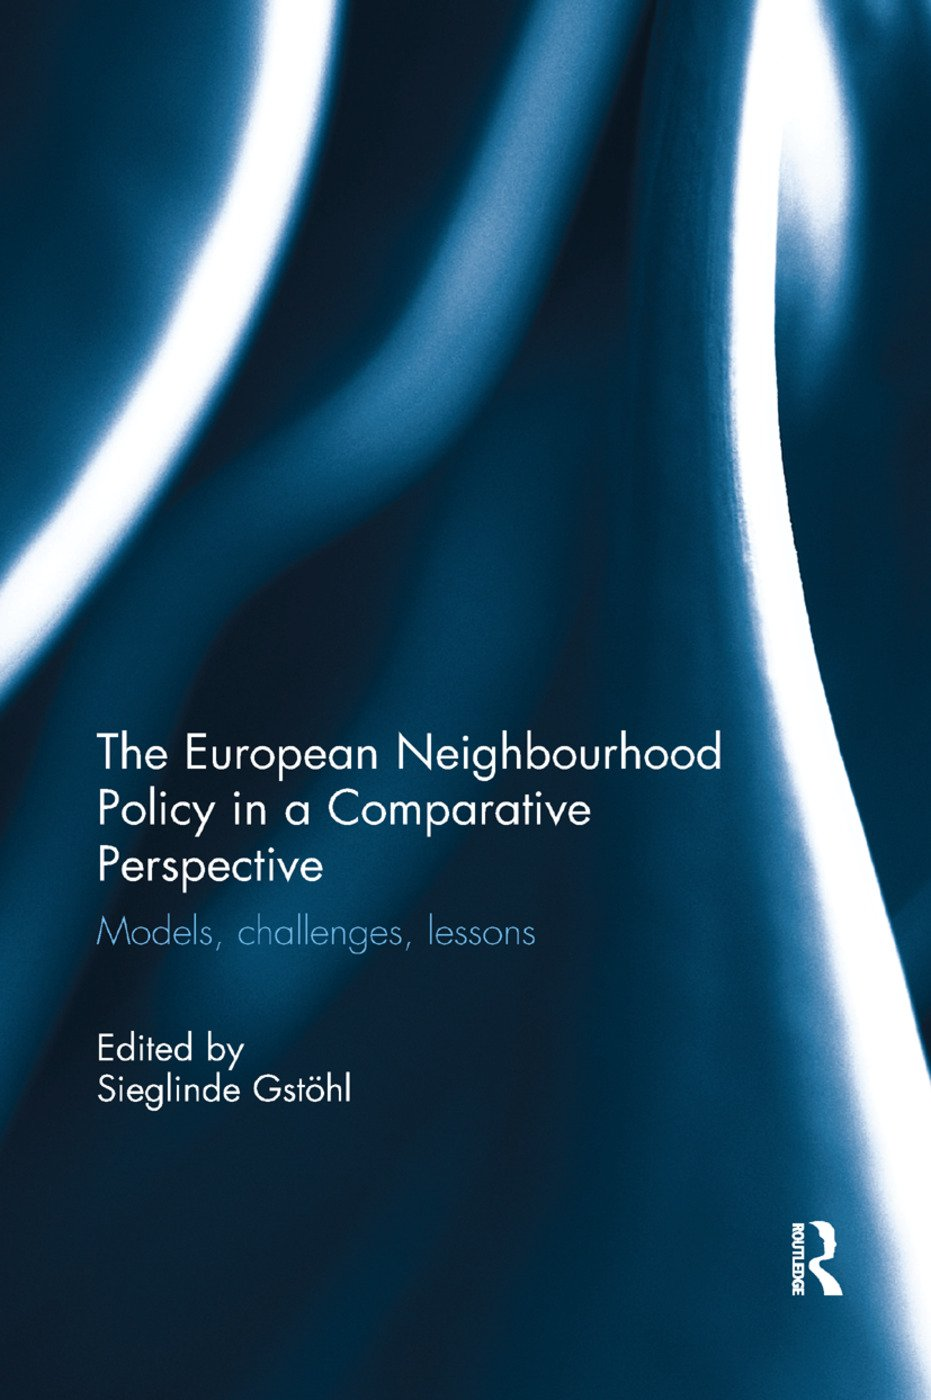 The European Neighbourhood Policy in a Comparative Perspective: Models, challenges, lessons book cover